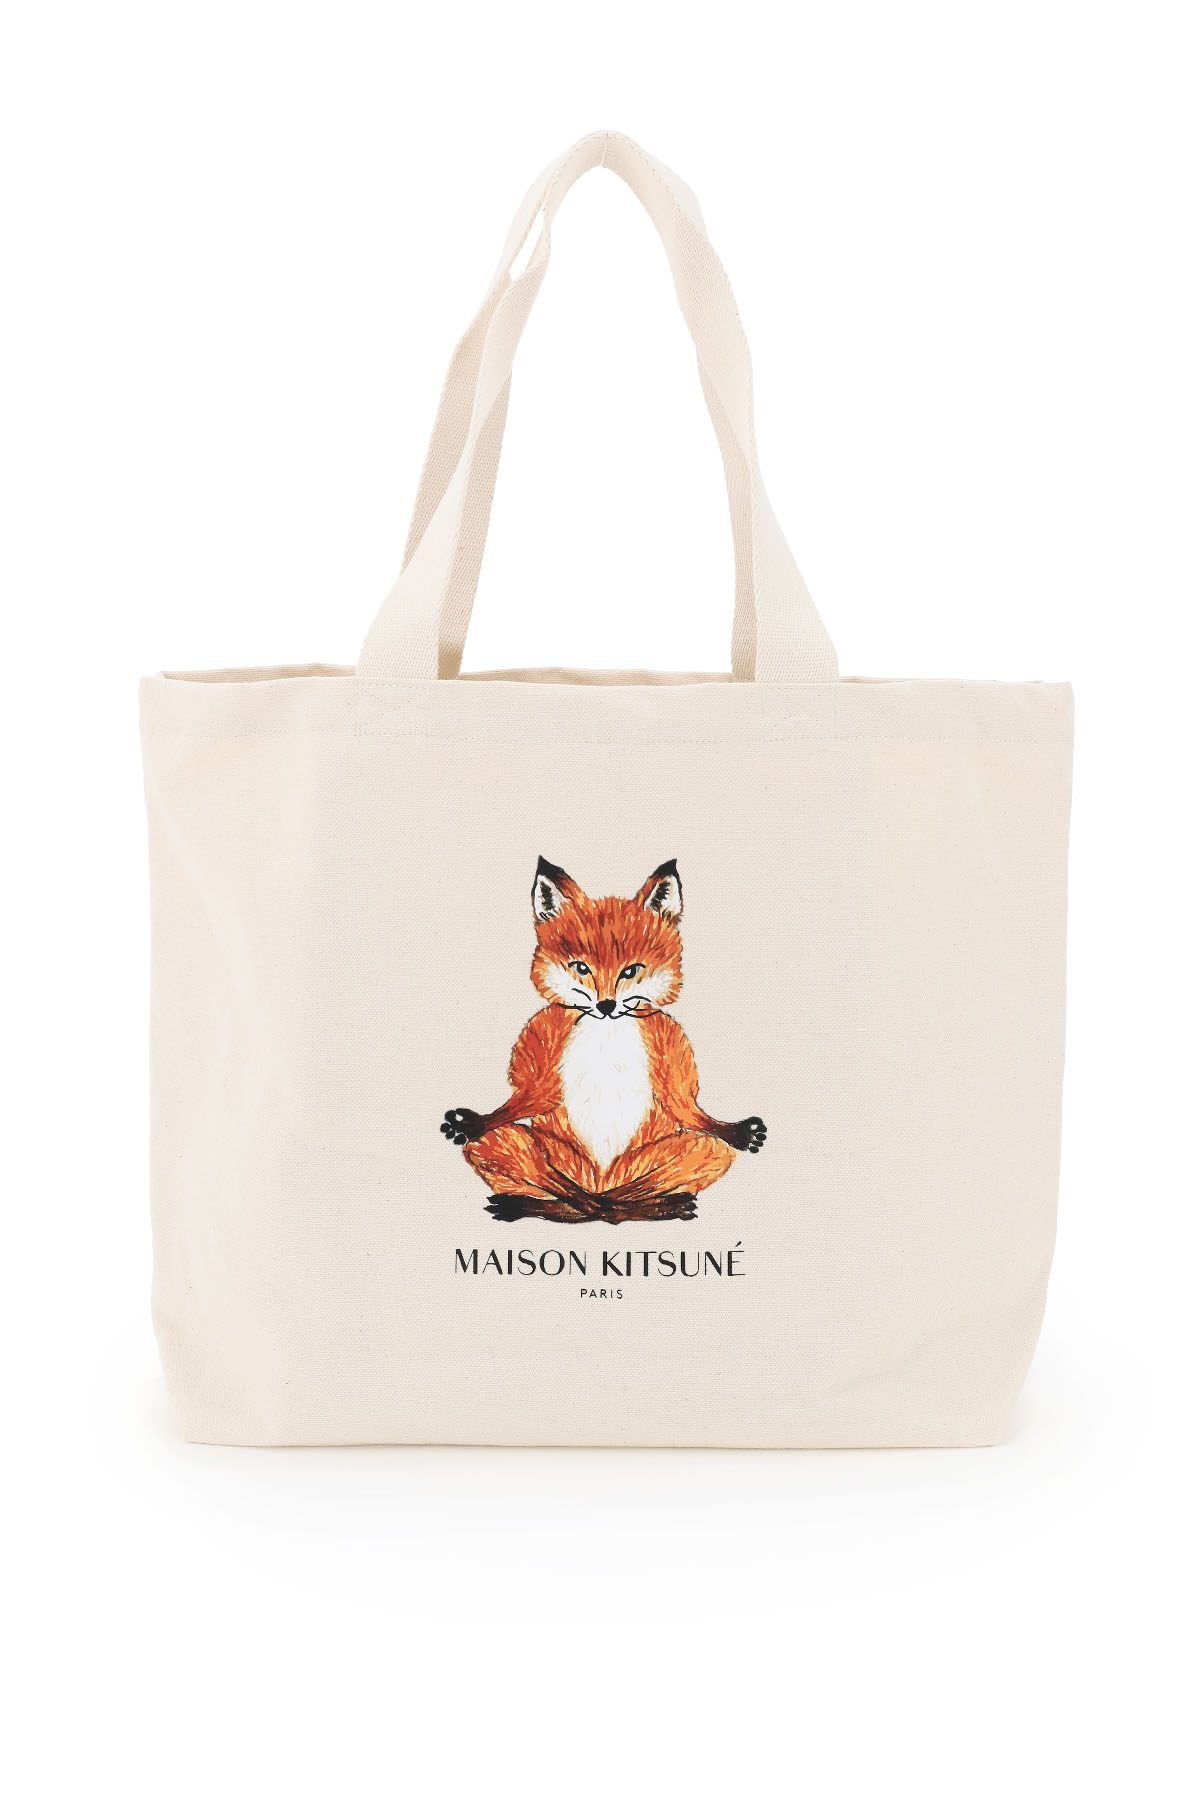 FOX HEAD LOGO TOTE BAG